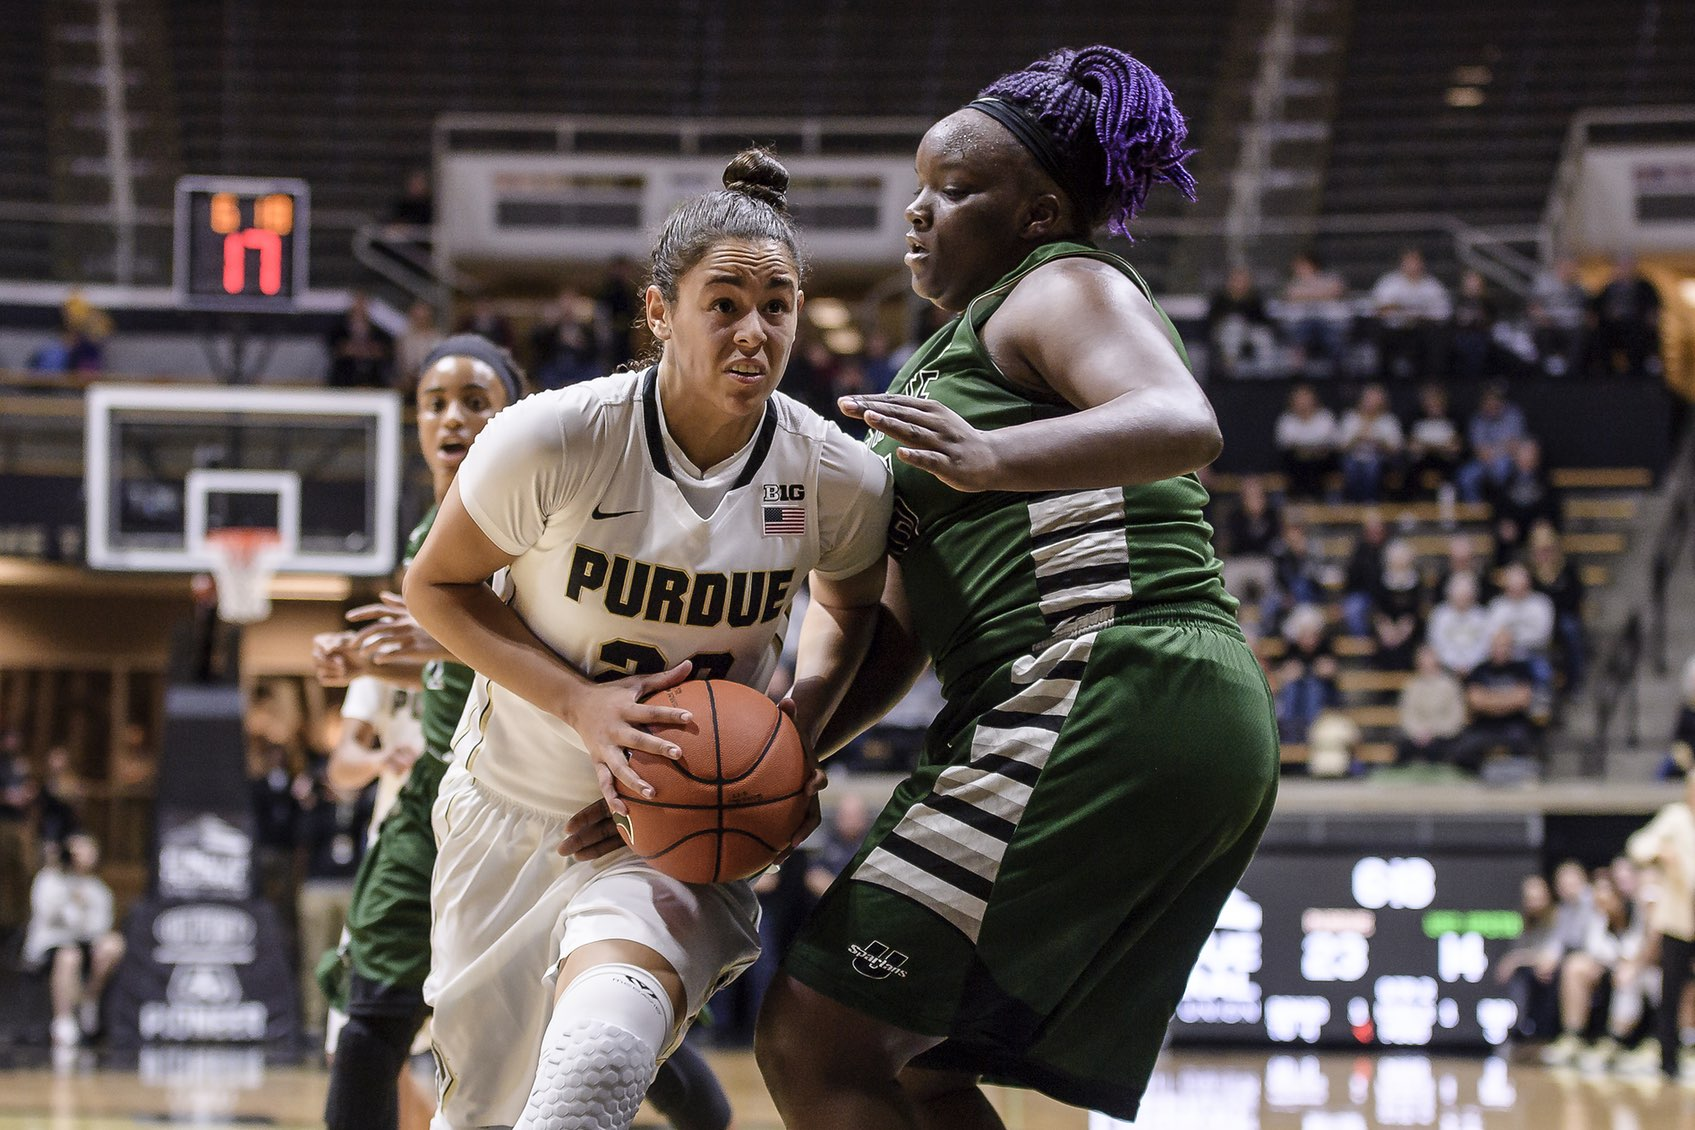 Both McBryde and Harris posted solid numbers against Coco Ritter and USC Upstate.